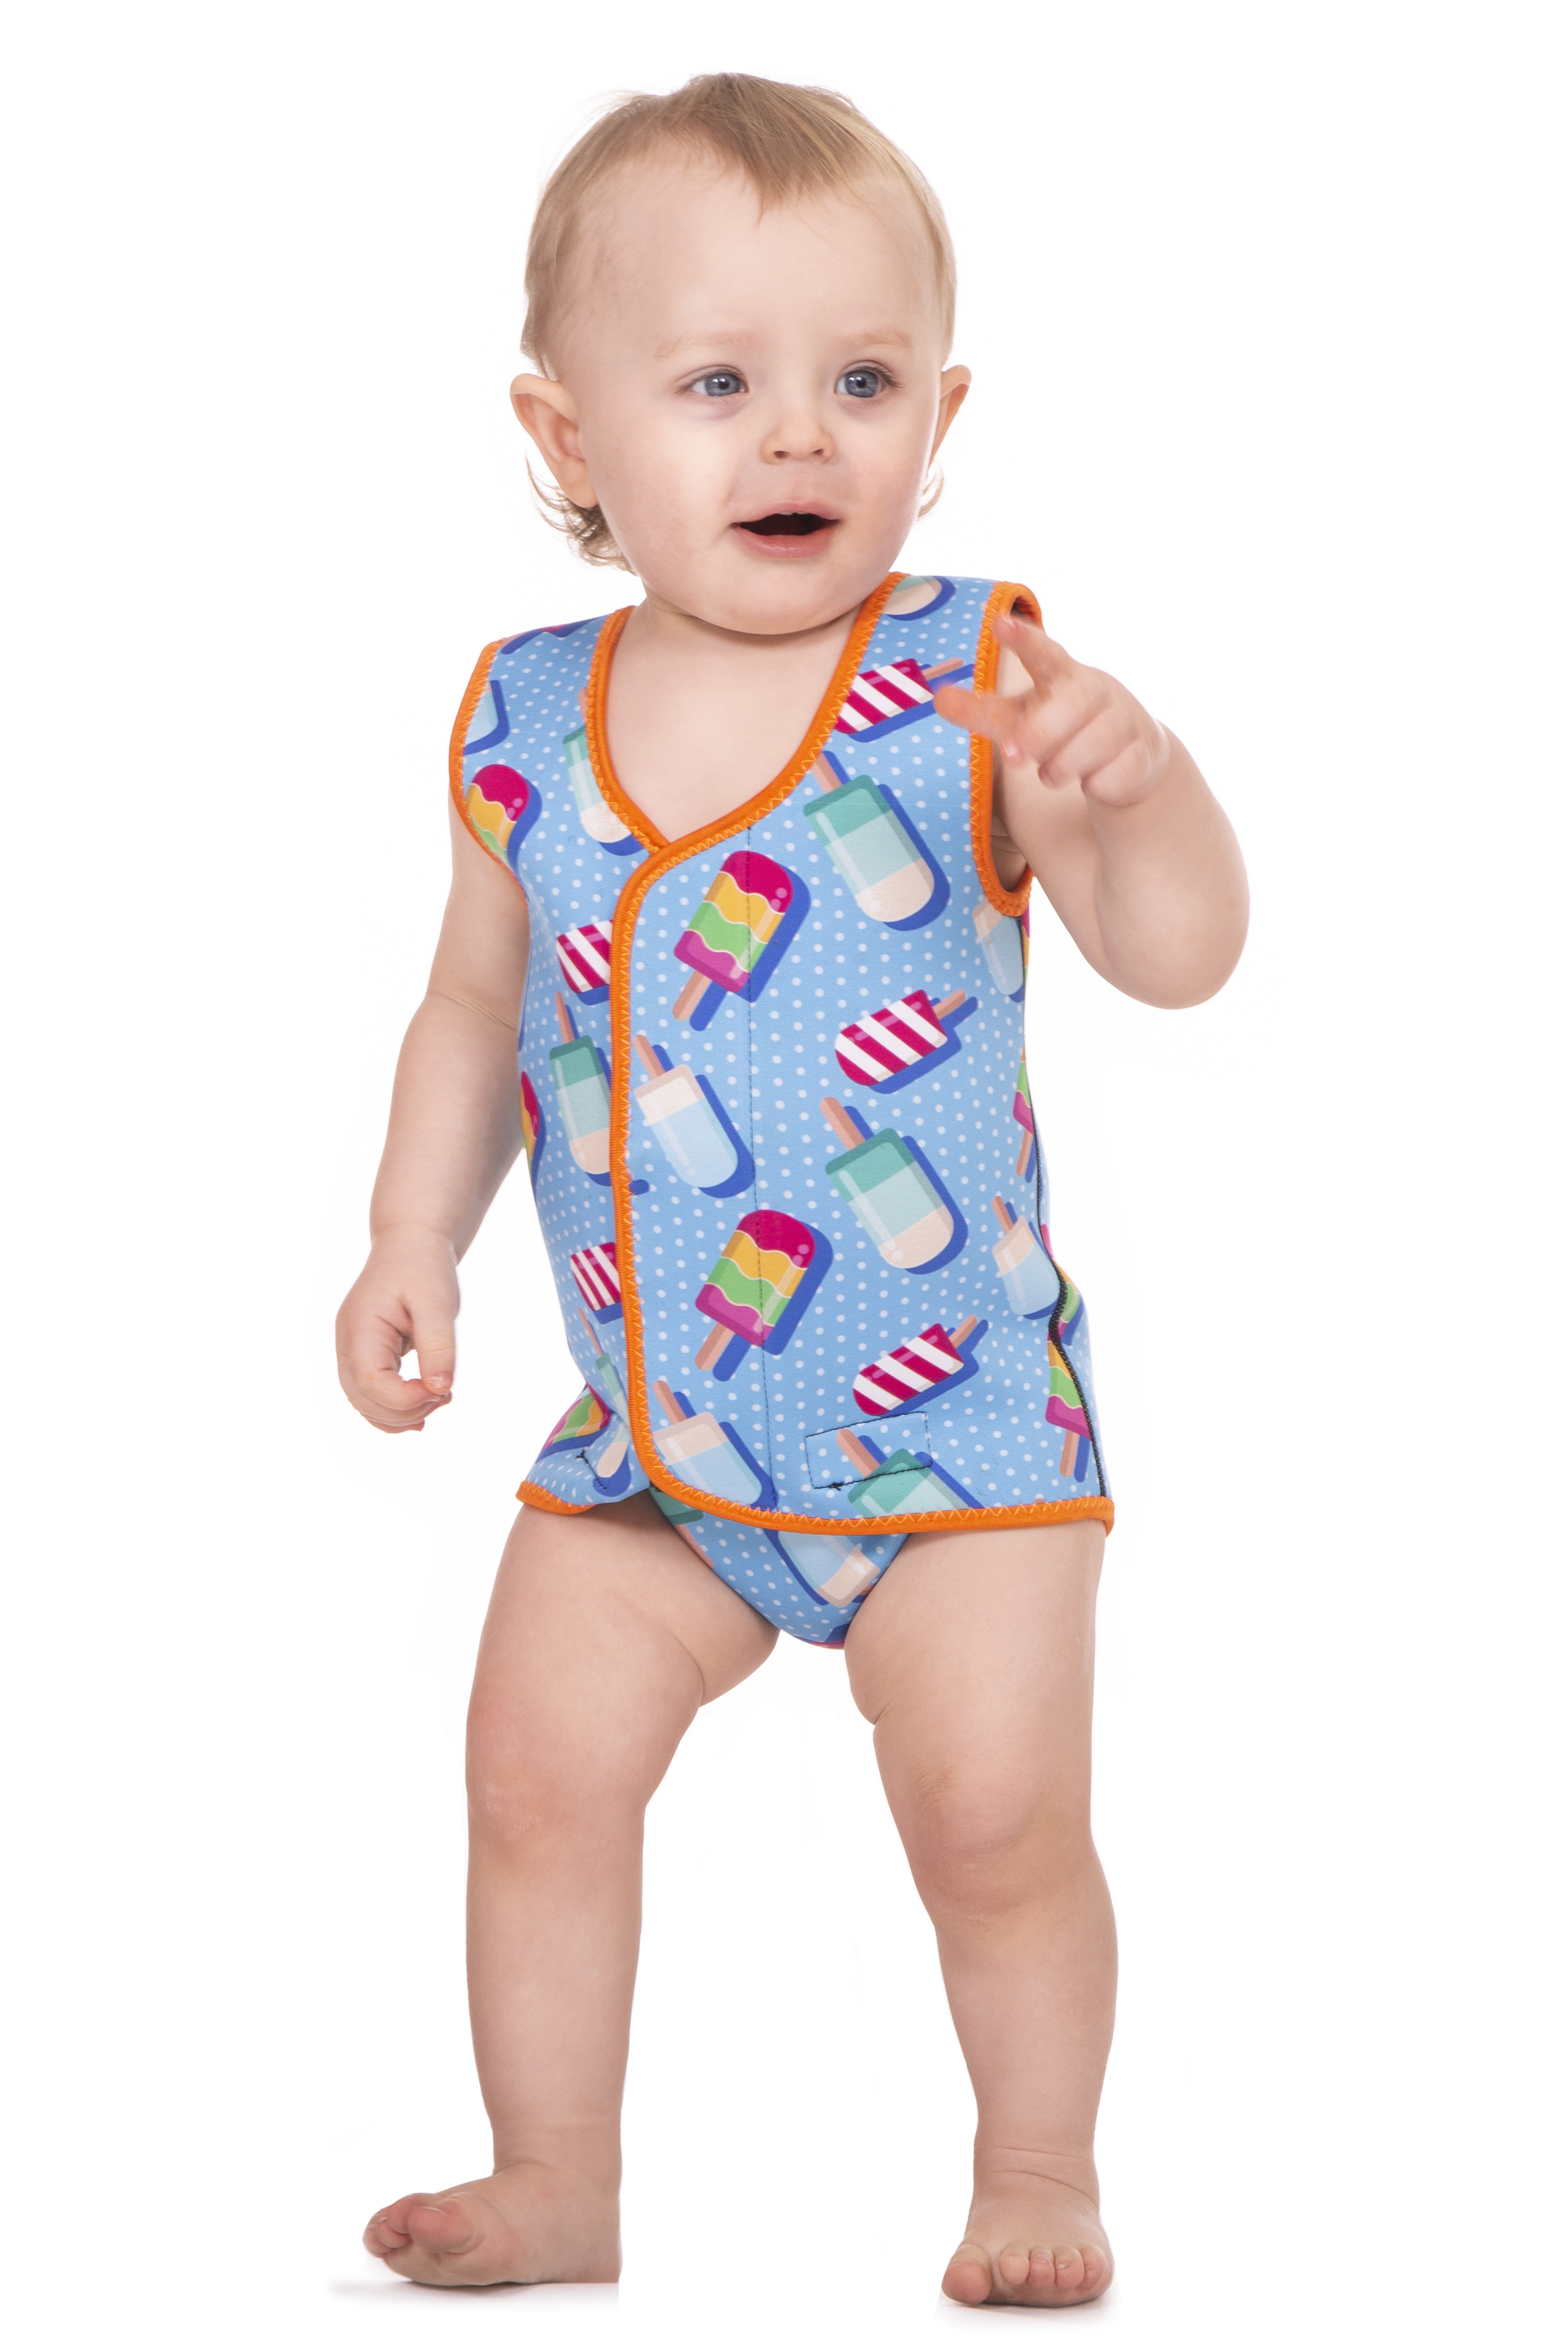 Babatastic Baby Full Body Neoprene All in One Boys and Girls Wetsuit Swimwear for Babies Toddlers and Children